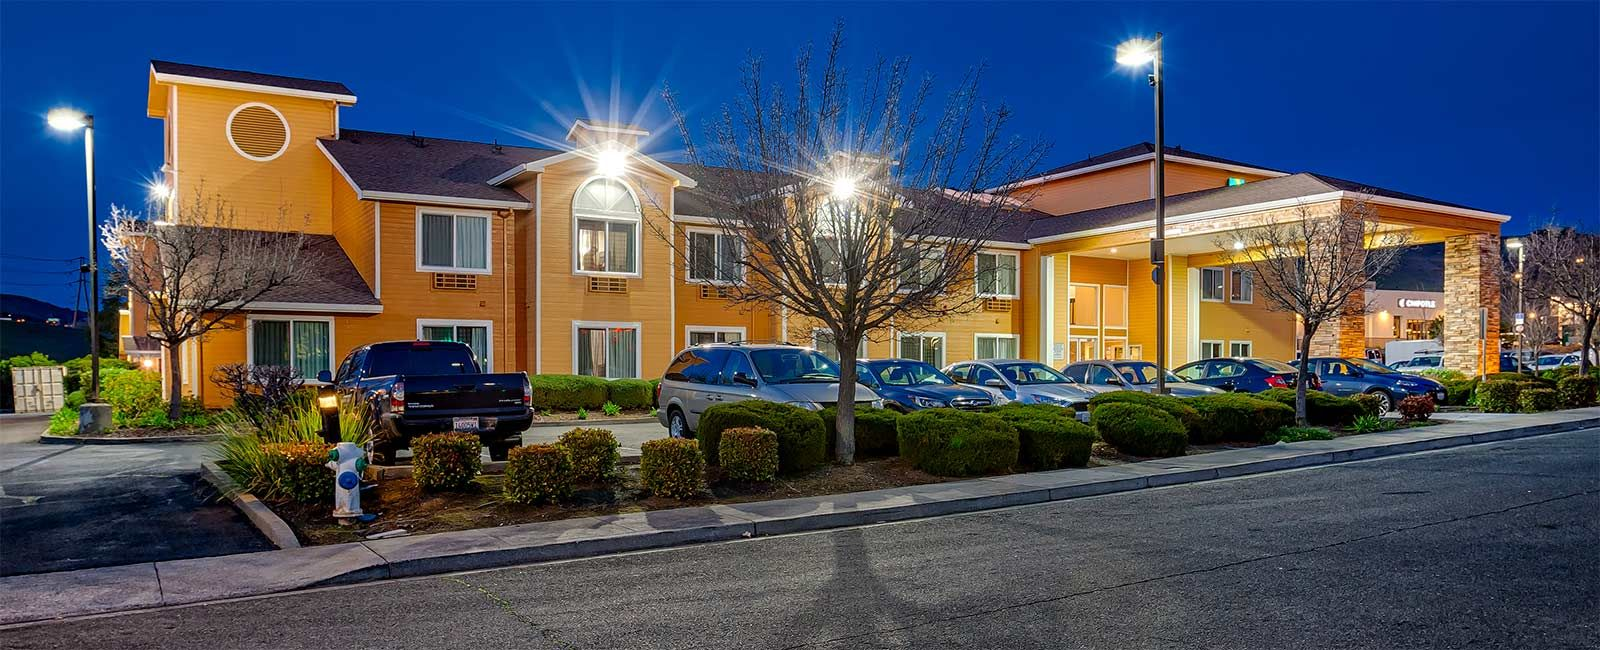 To Grab The Exciting Vallejo Ca Hotels Deals Book Your Stay At Top Rated Quality Inn Vallejo We Give Outstanding Accom California Hotel Hotel Packages Vallejo